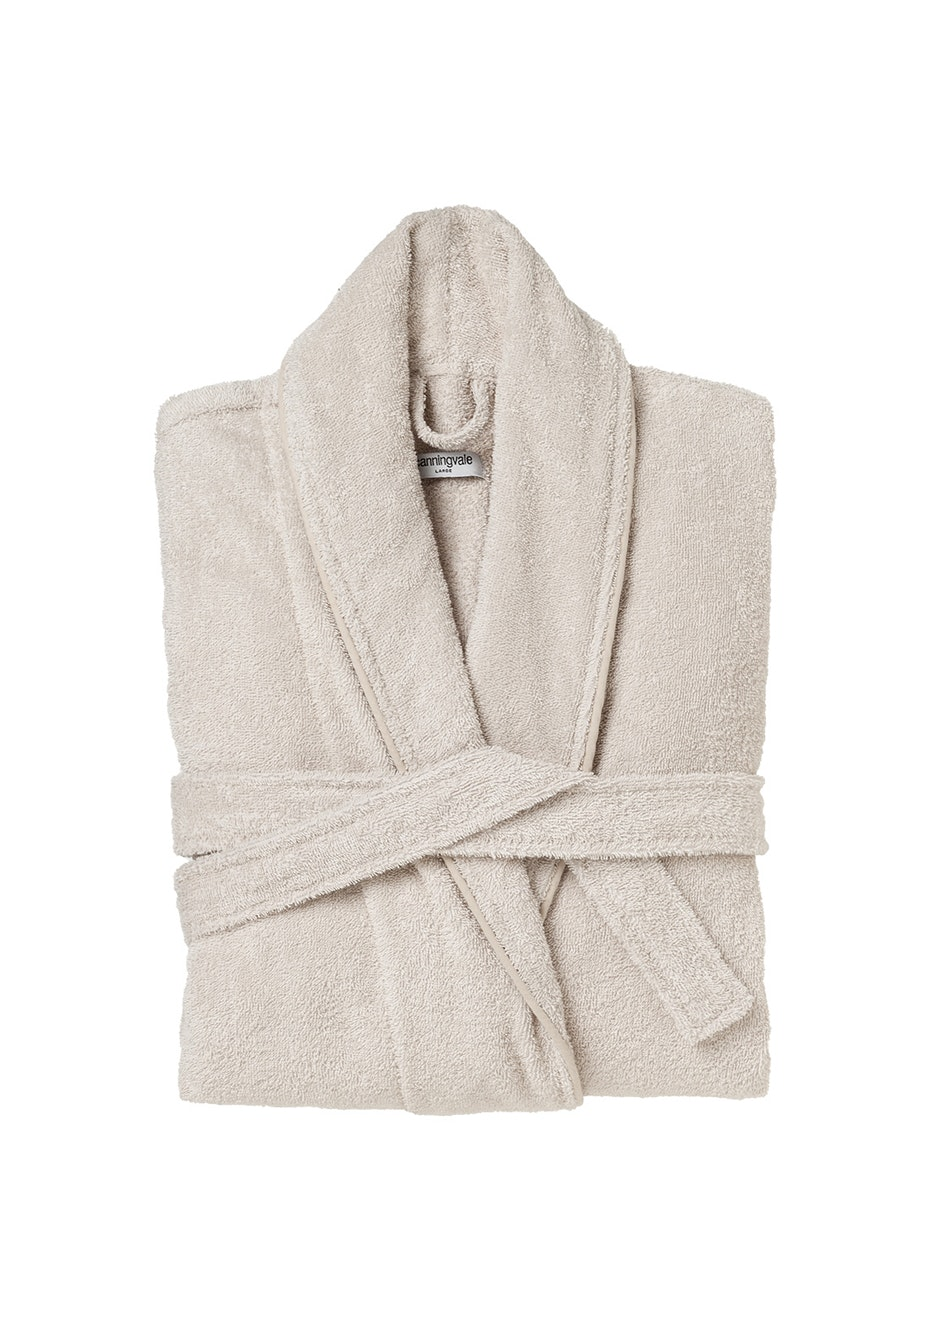 Large Classic Cotton Terry Bathrobe - Natural.